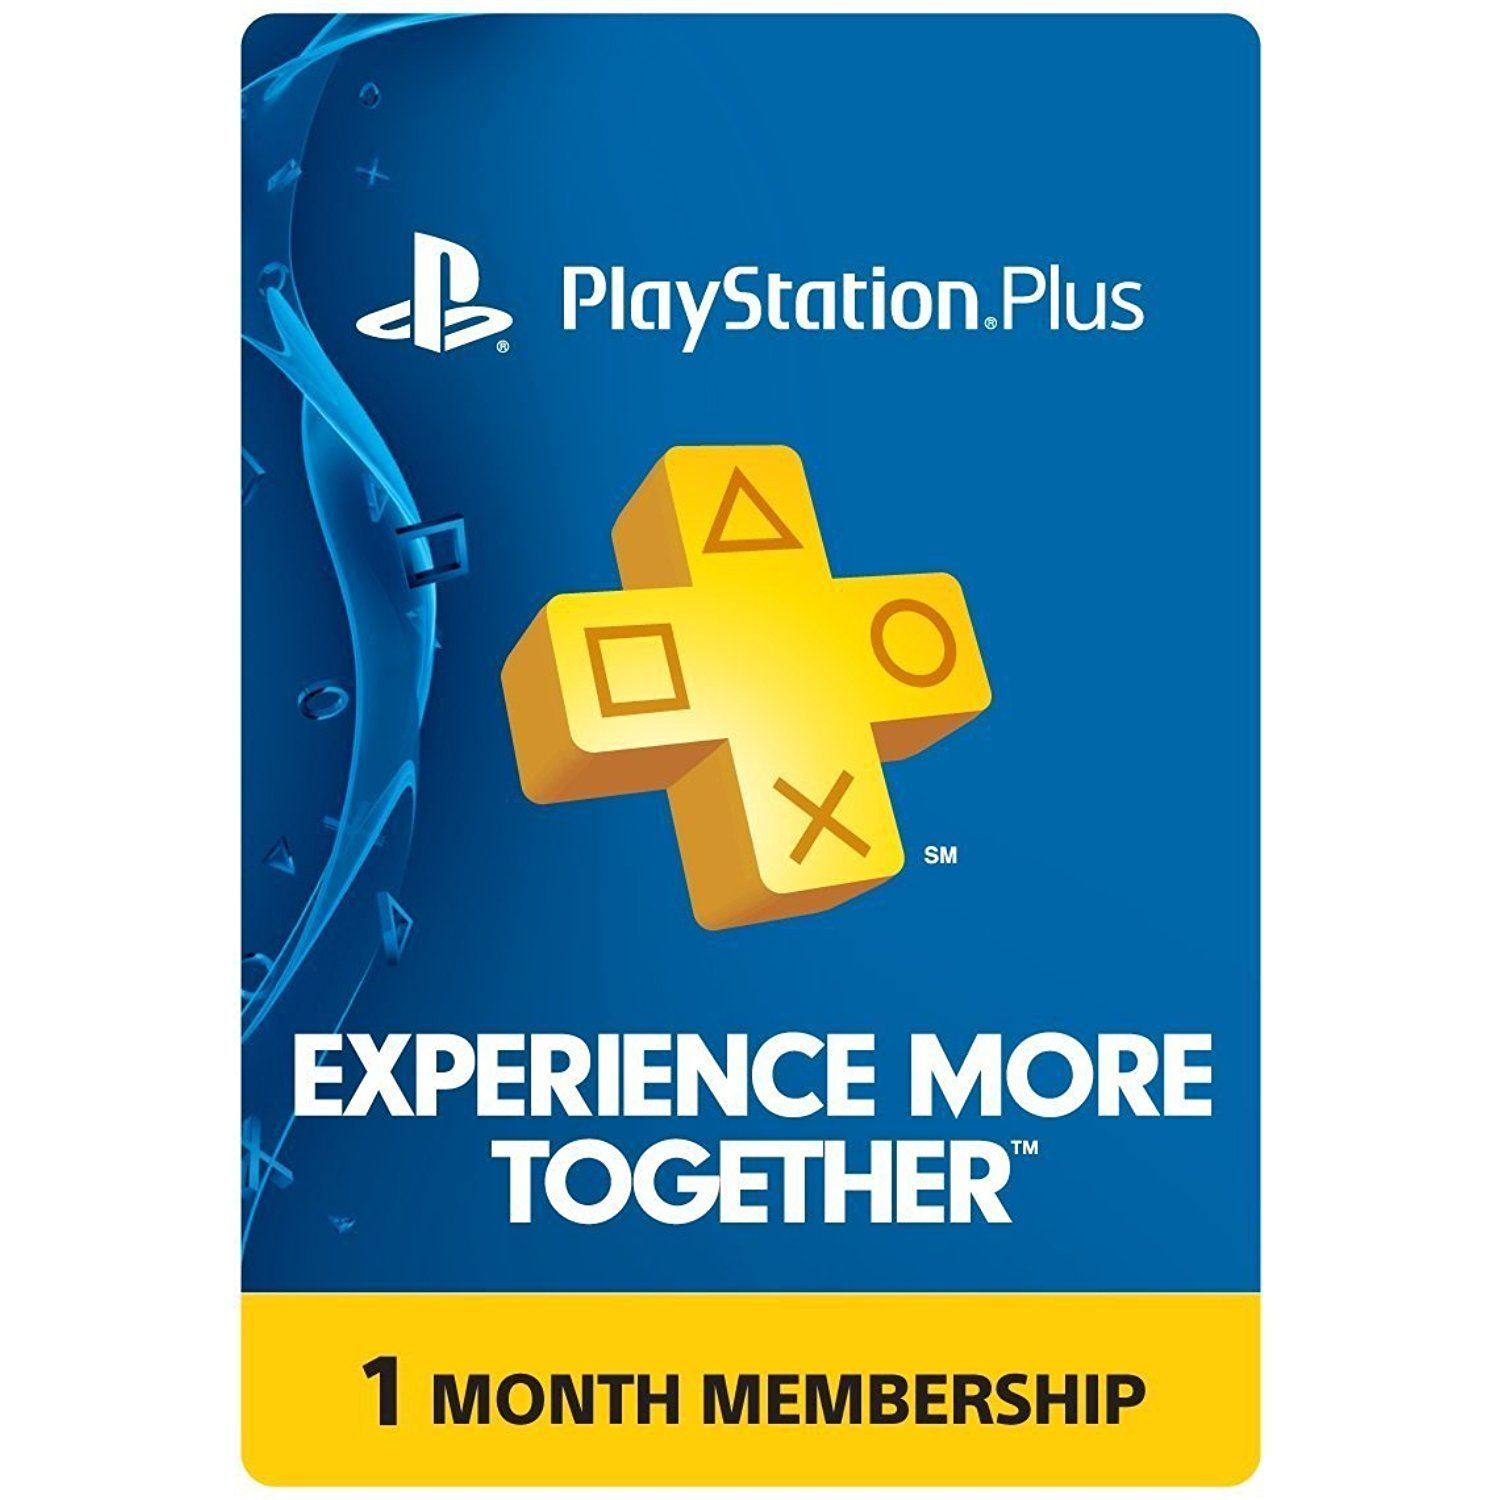 1 Month PlayStation Plus Membership PS3 / PS4 / PS Vita